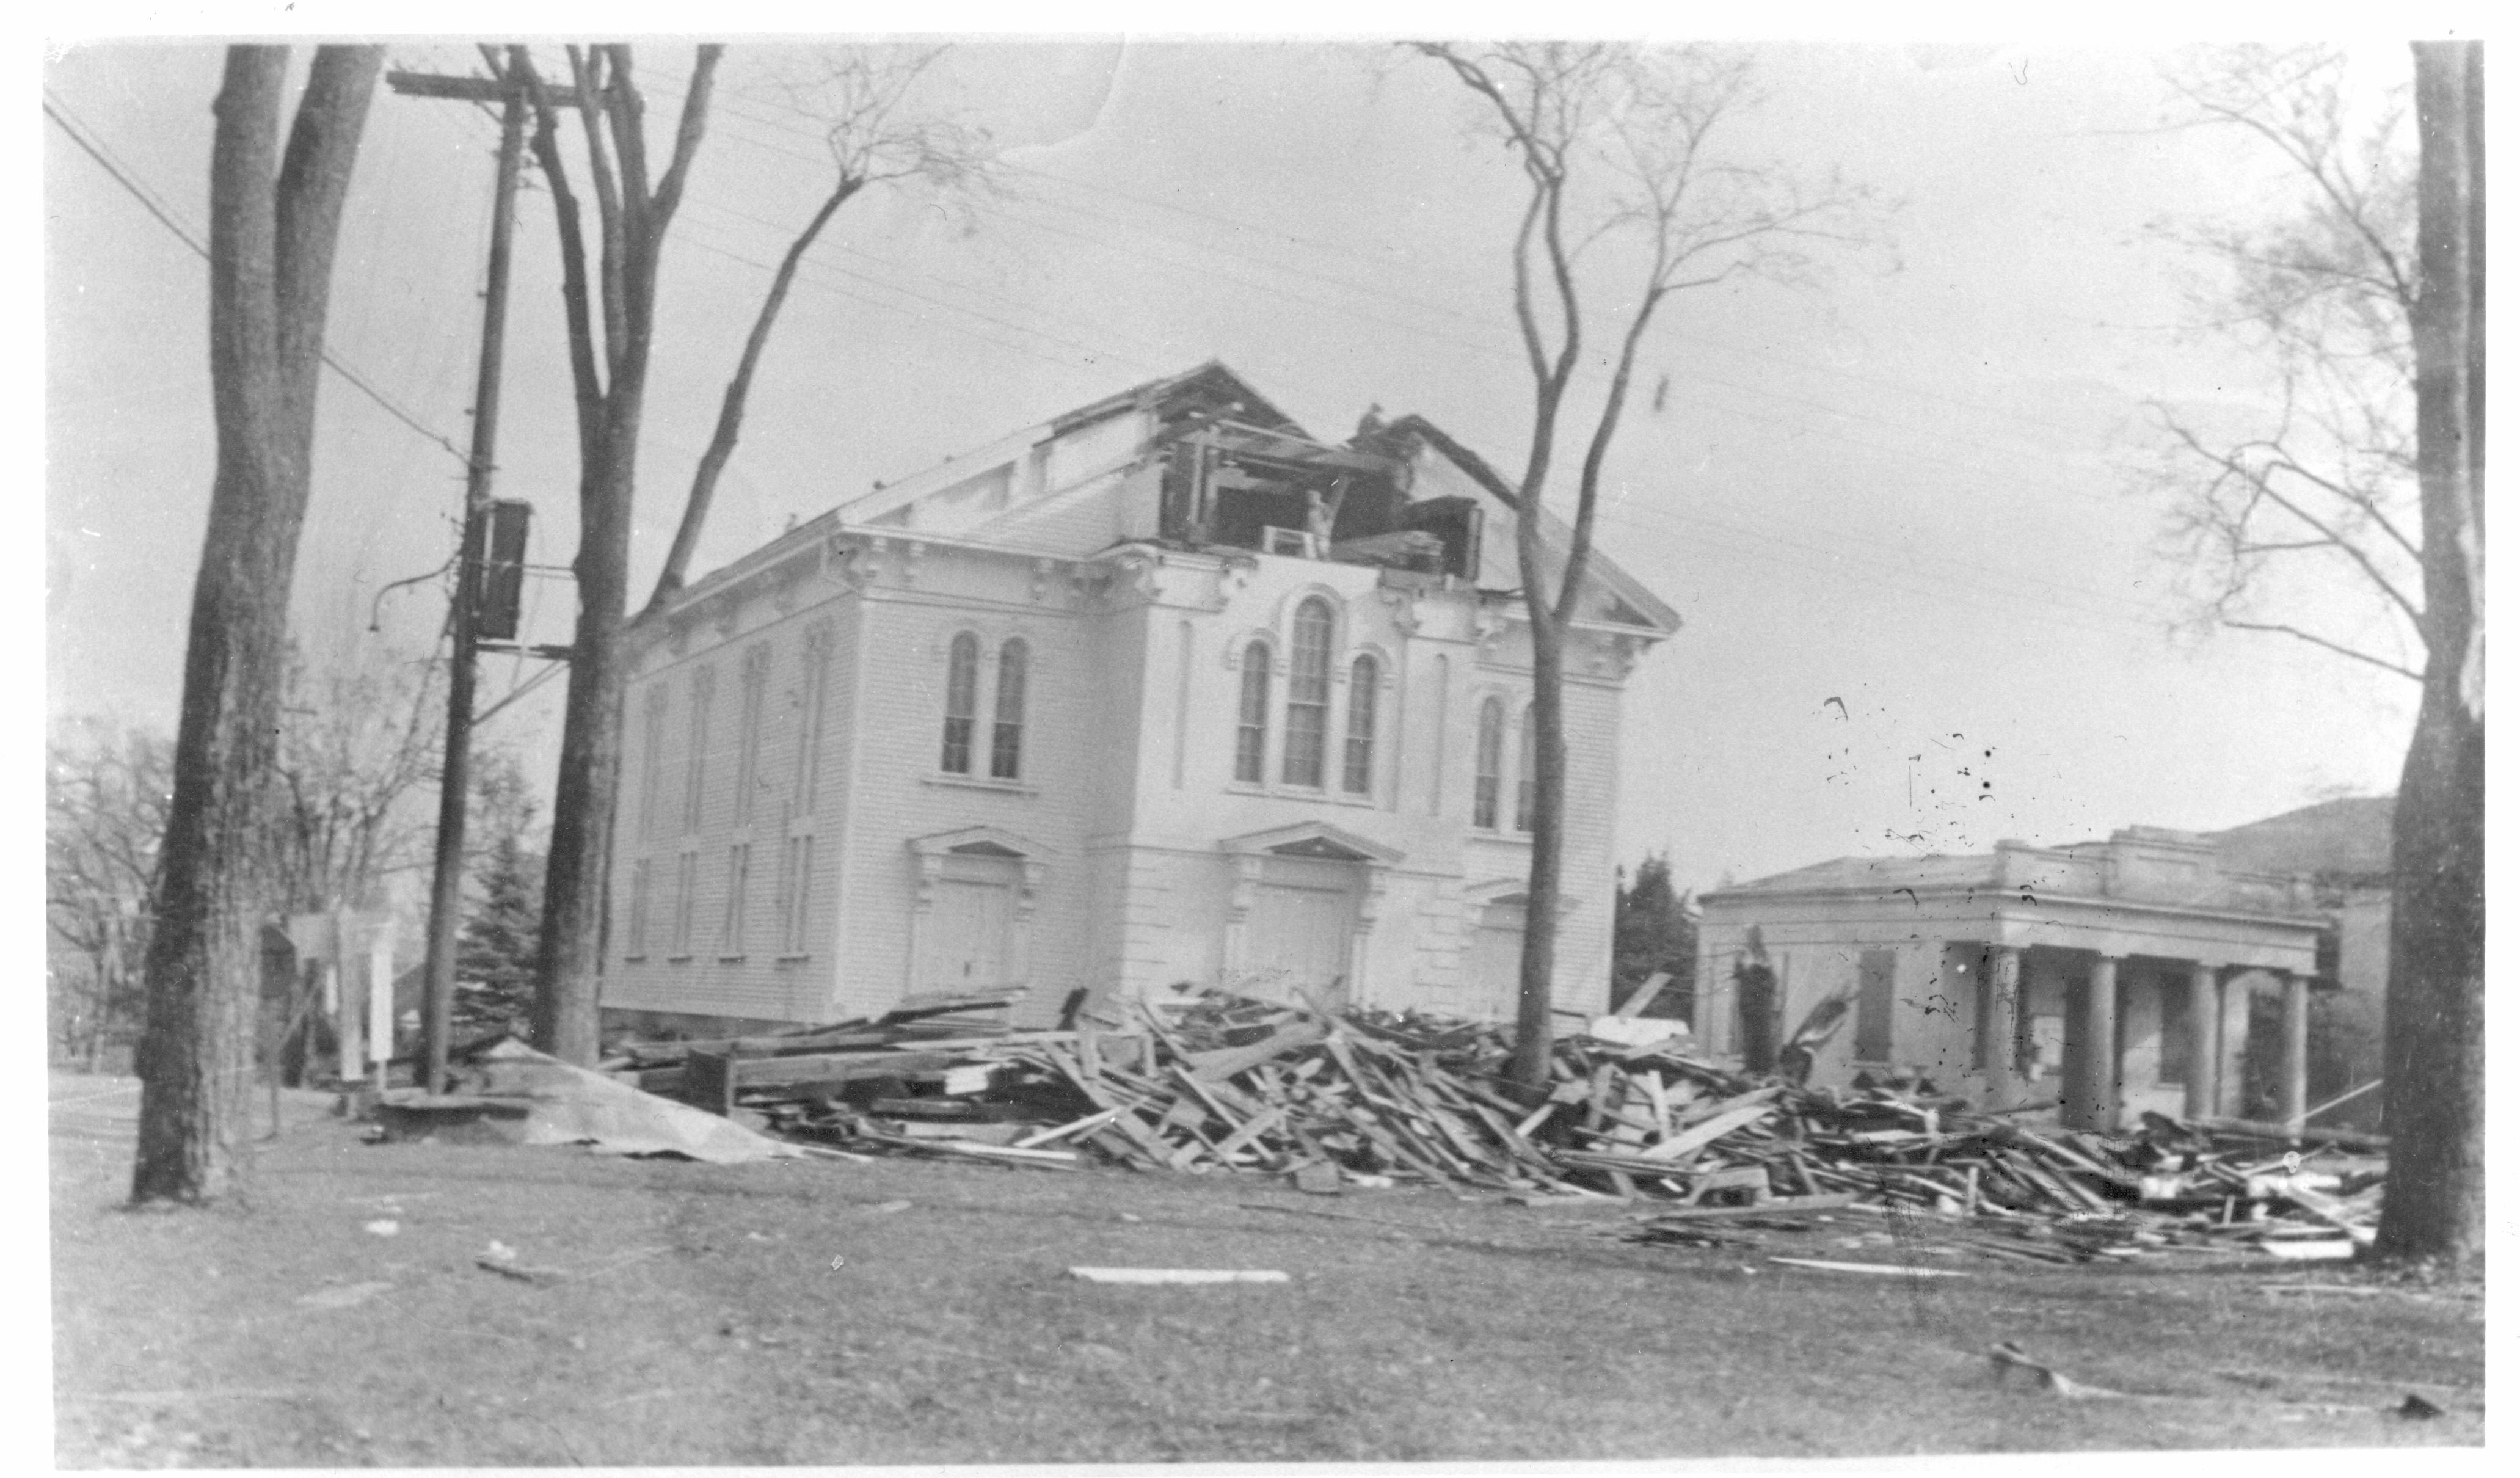 1938 Hurricane - Thompson Congregational Church without steep